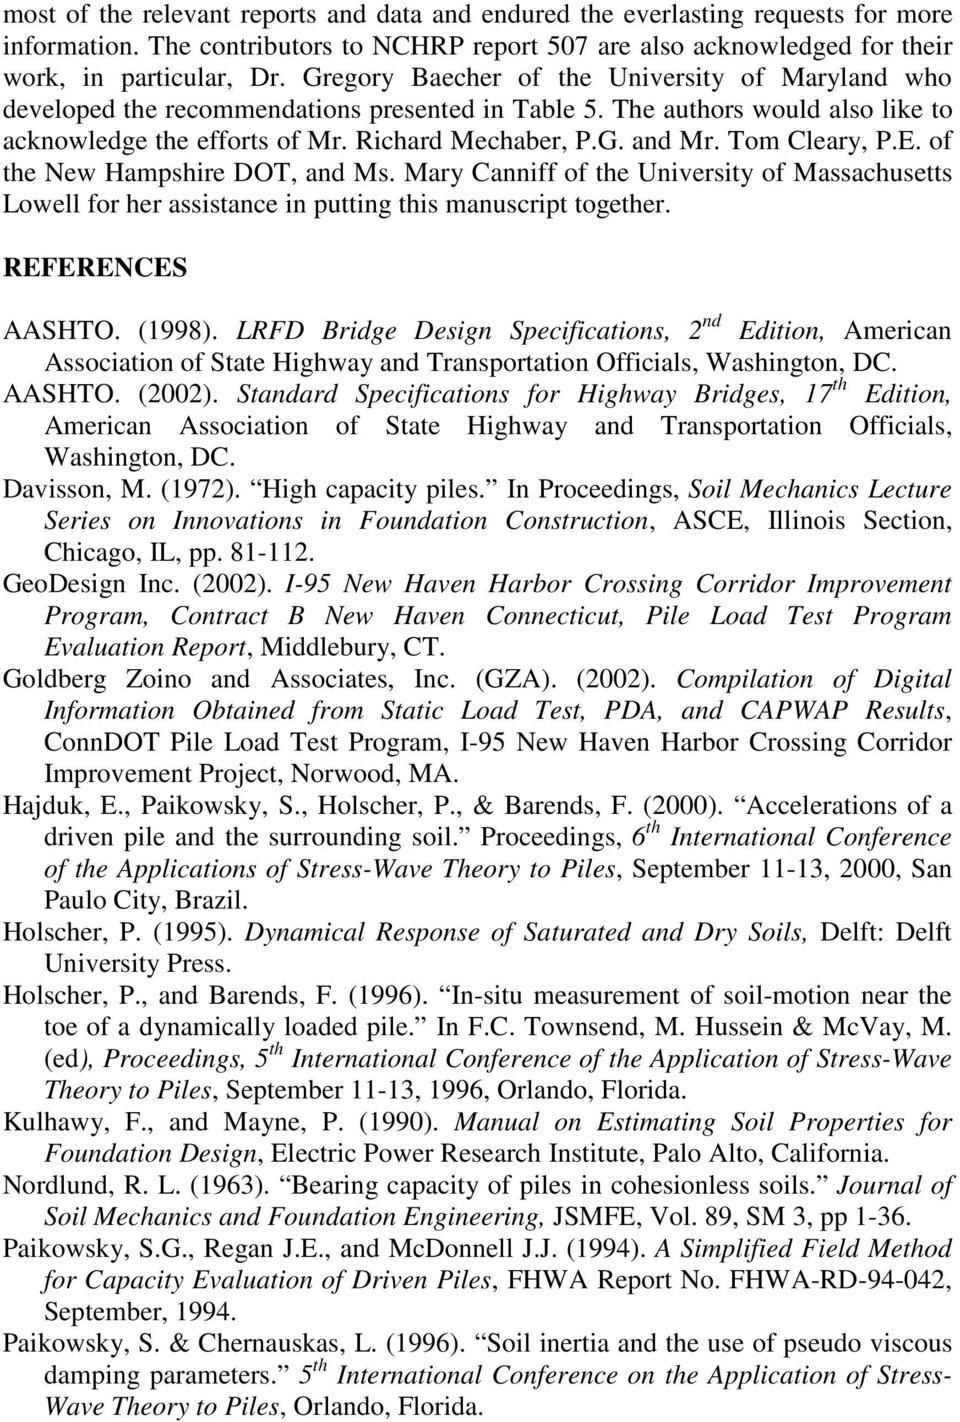 Tom Cleary, P.E. of the New Hampshire DOT, and Ms. Mary Canniff of the University of Massachusetts Lowell for her assistance in putting this manuscript together. REFERENCES AASHTO. (1998).